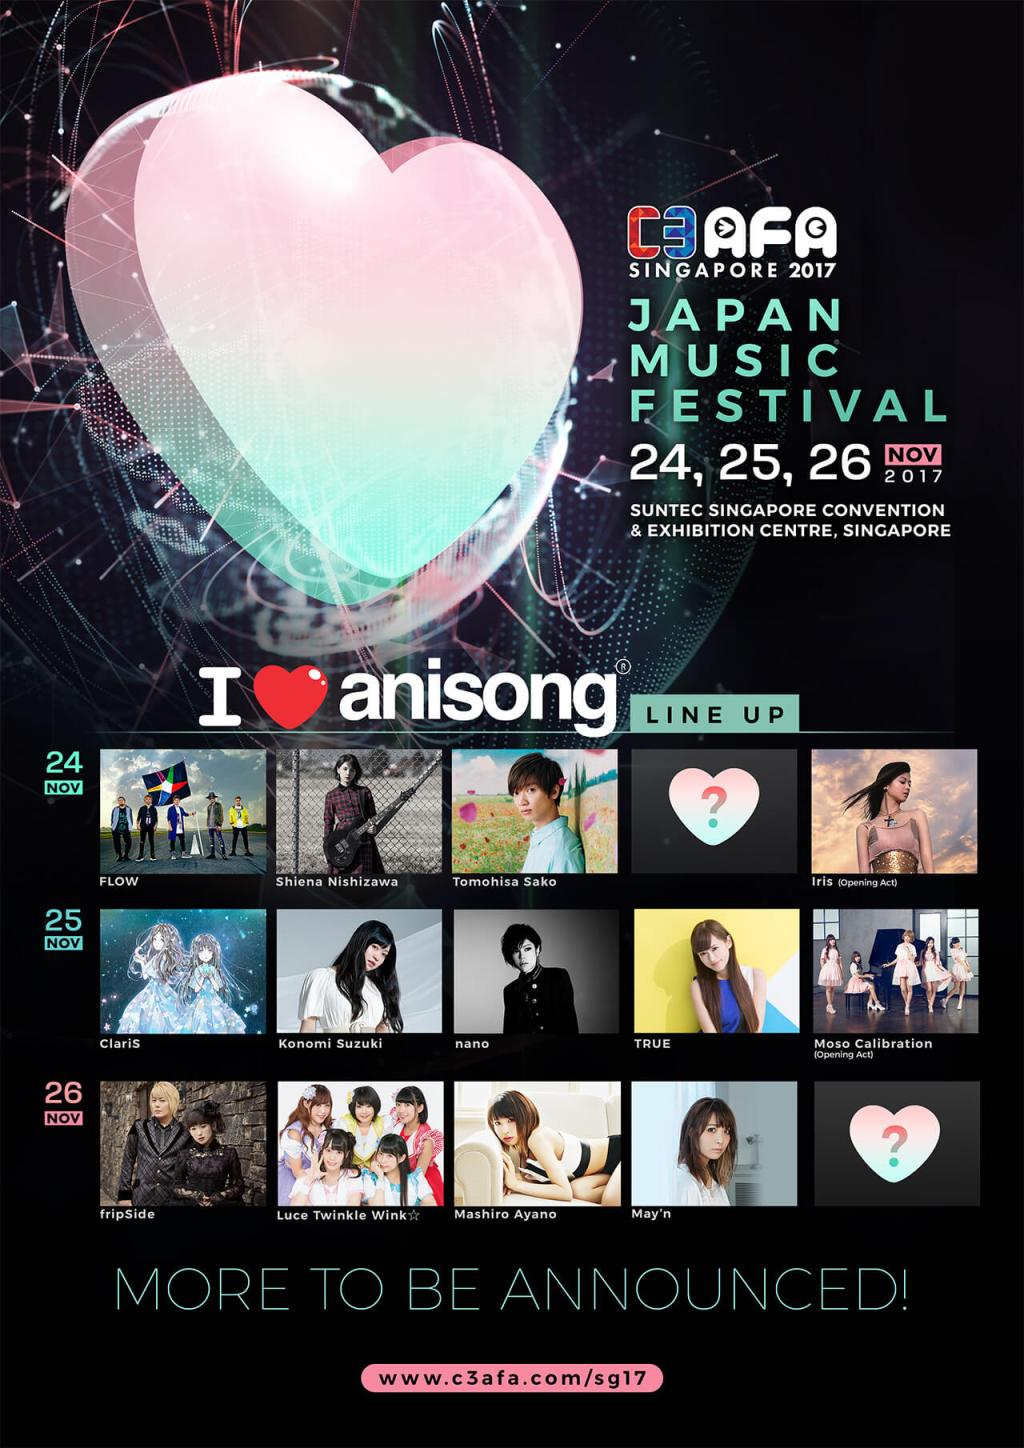 C3 AFA Singapore 2017 Brings Fans Third Wave of I Love Anisong Artistes!